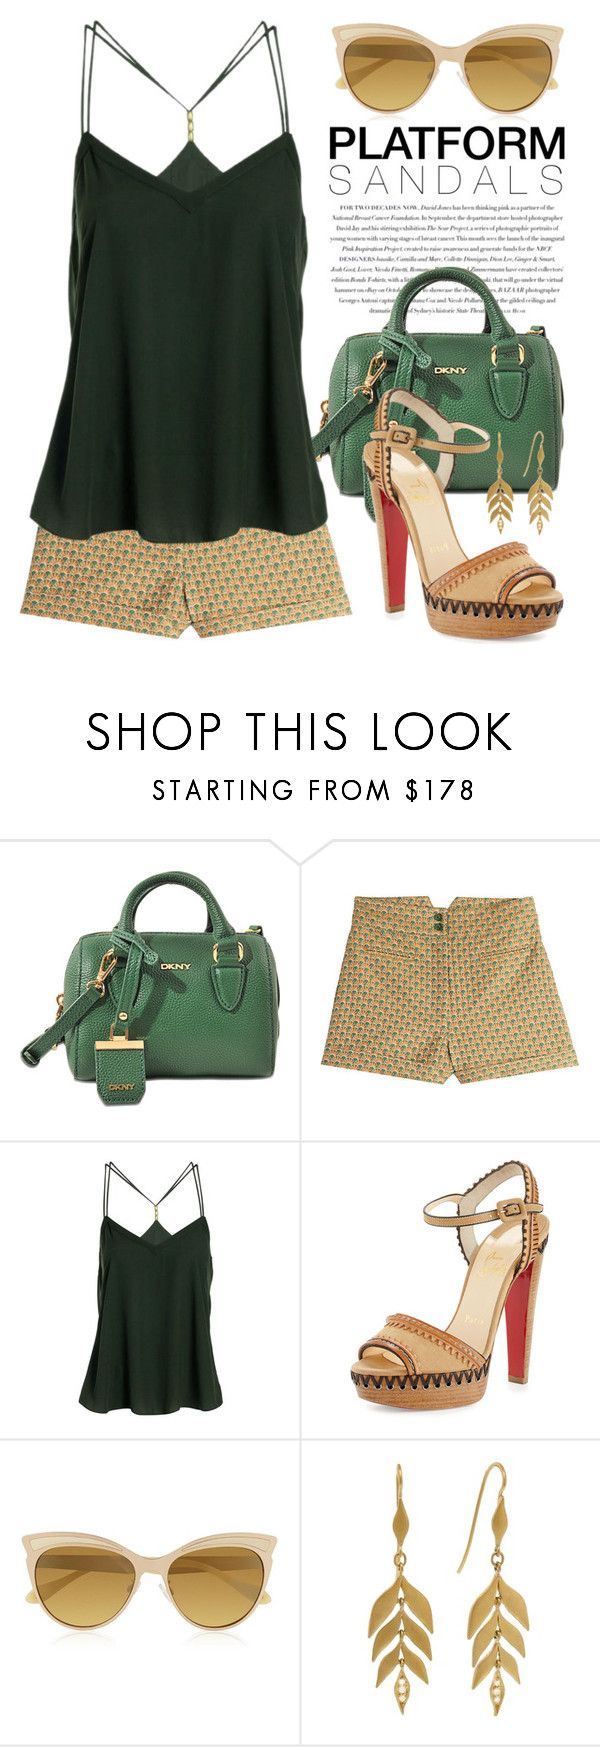 """""""Sandals with Platform and Heel 1875"""" by boxthoughts ❤ liked on Polyvore featuring Envi:, DKNY, Anna Sui, Christian Louboutin, Vivienne Westwood, Cathy Waterman and contestentry"""